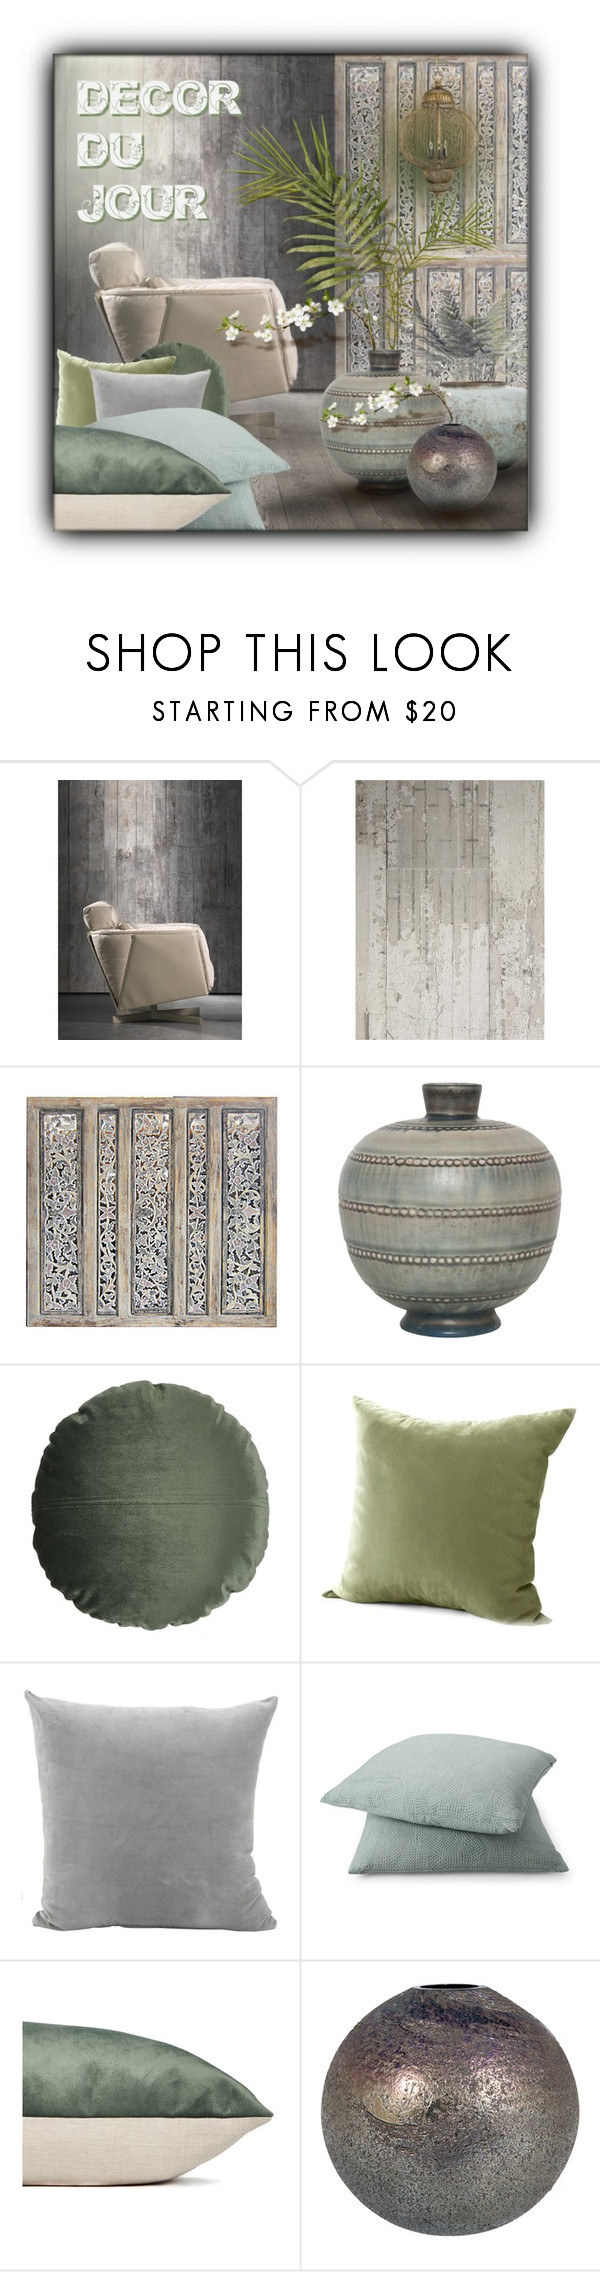 Decor du jour by sapora liked on polyvore featuring interior decor du jour by sapora liked on polyvore featuring interior interiors teraionfo